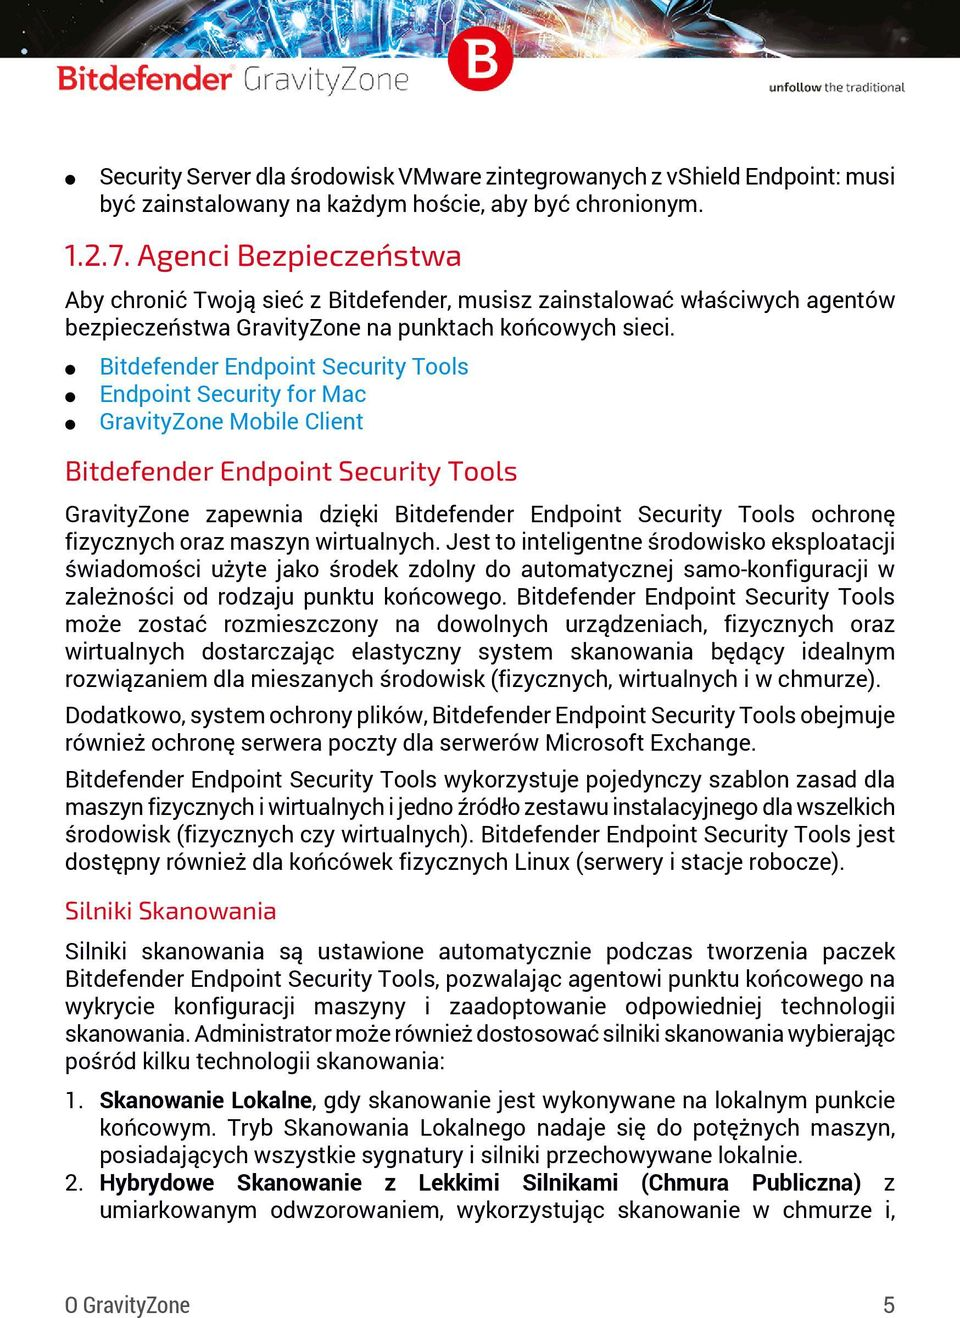 Bitdefender Endpoint Security Tools Endpoint Security for Mac GravityZone Mobile Client Bitdefender Endpoint Security Tools GravityZone zapewnia dzięki Bitdefender Endpoint Security Tools ochronę